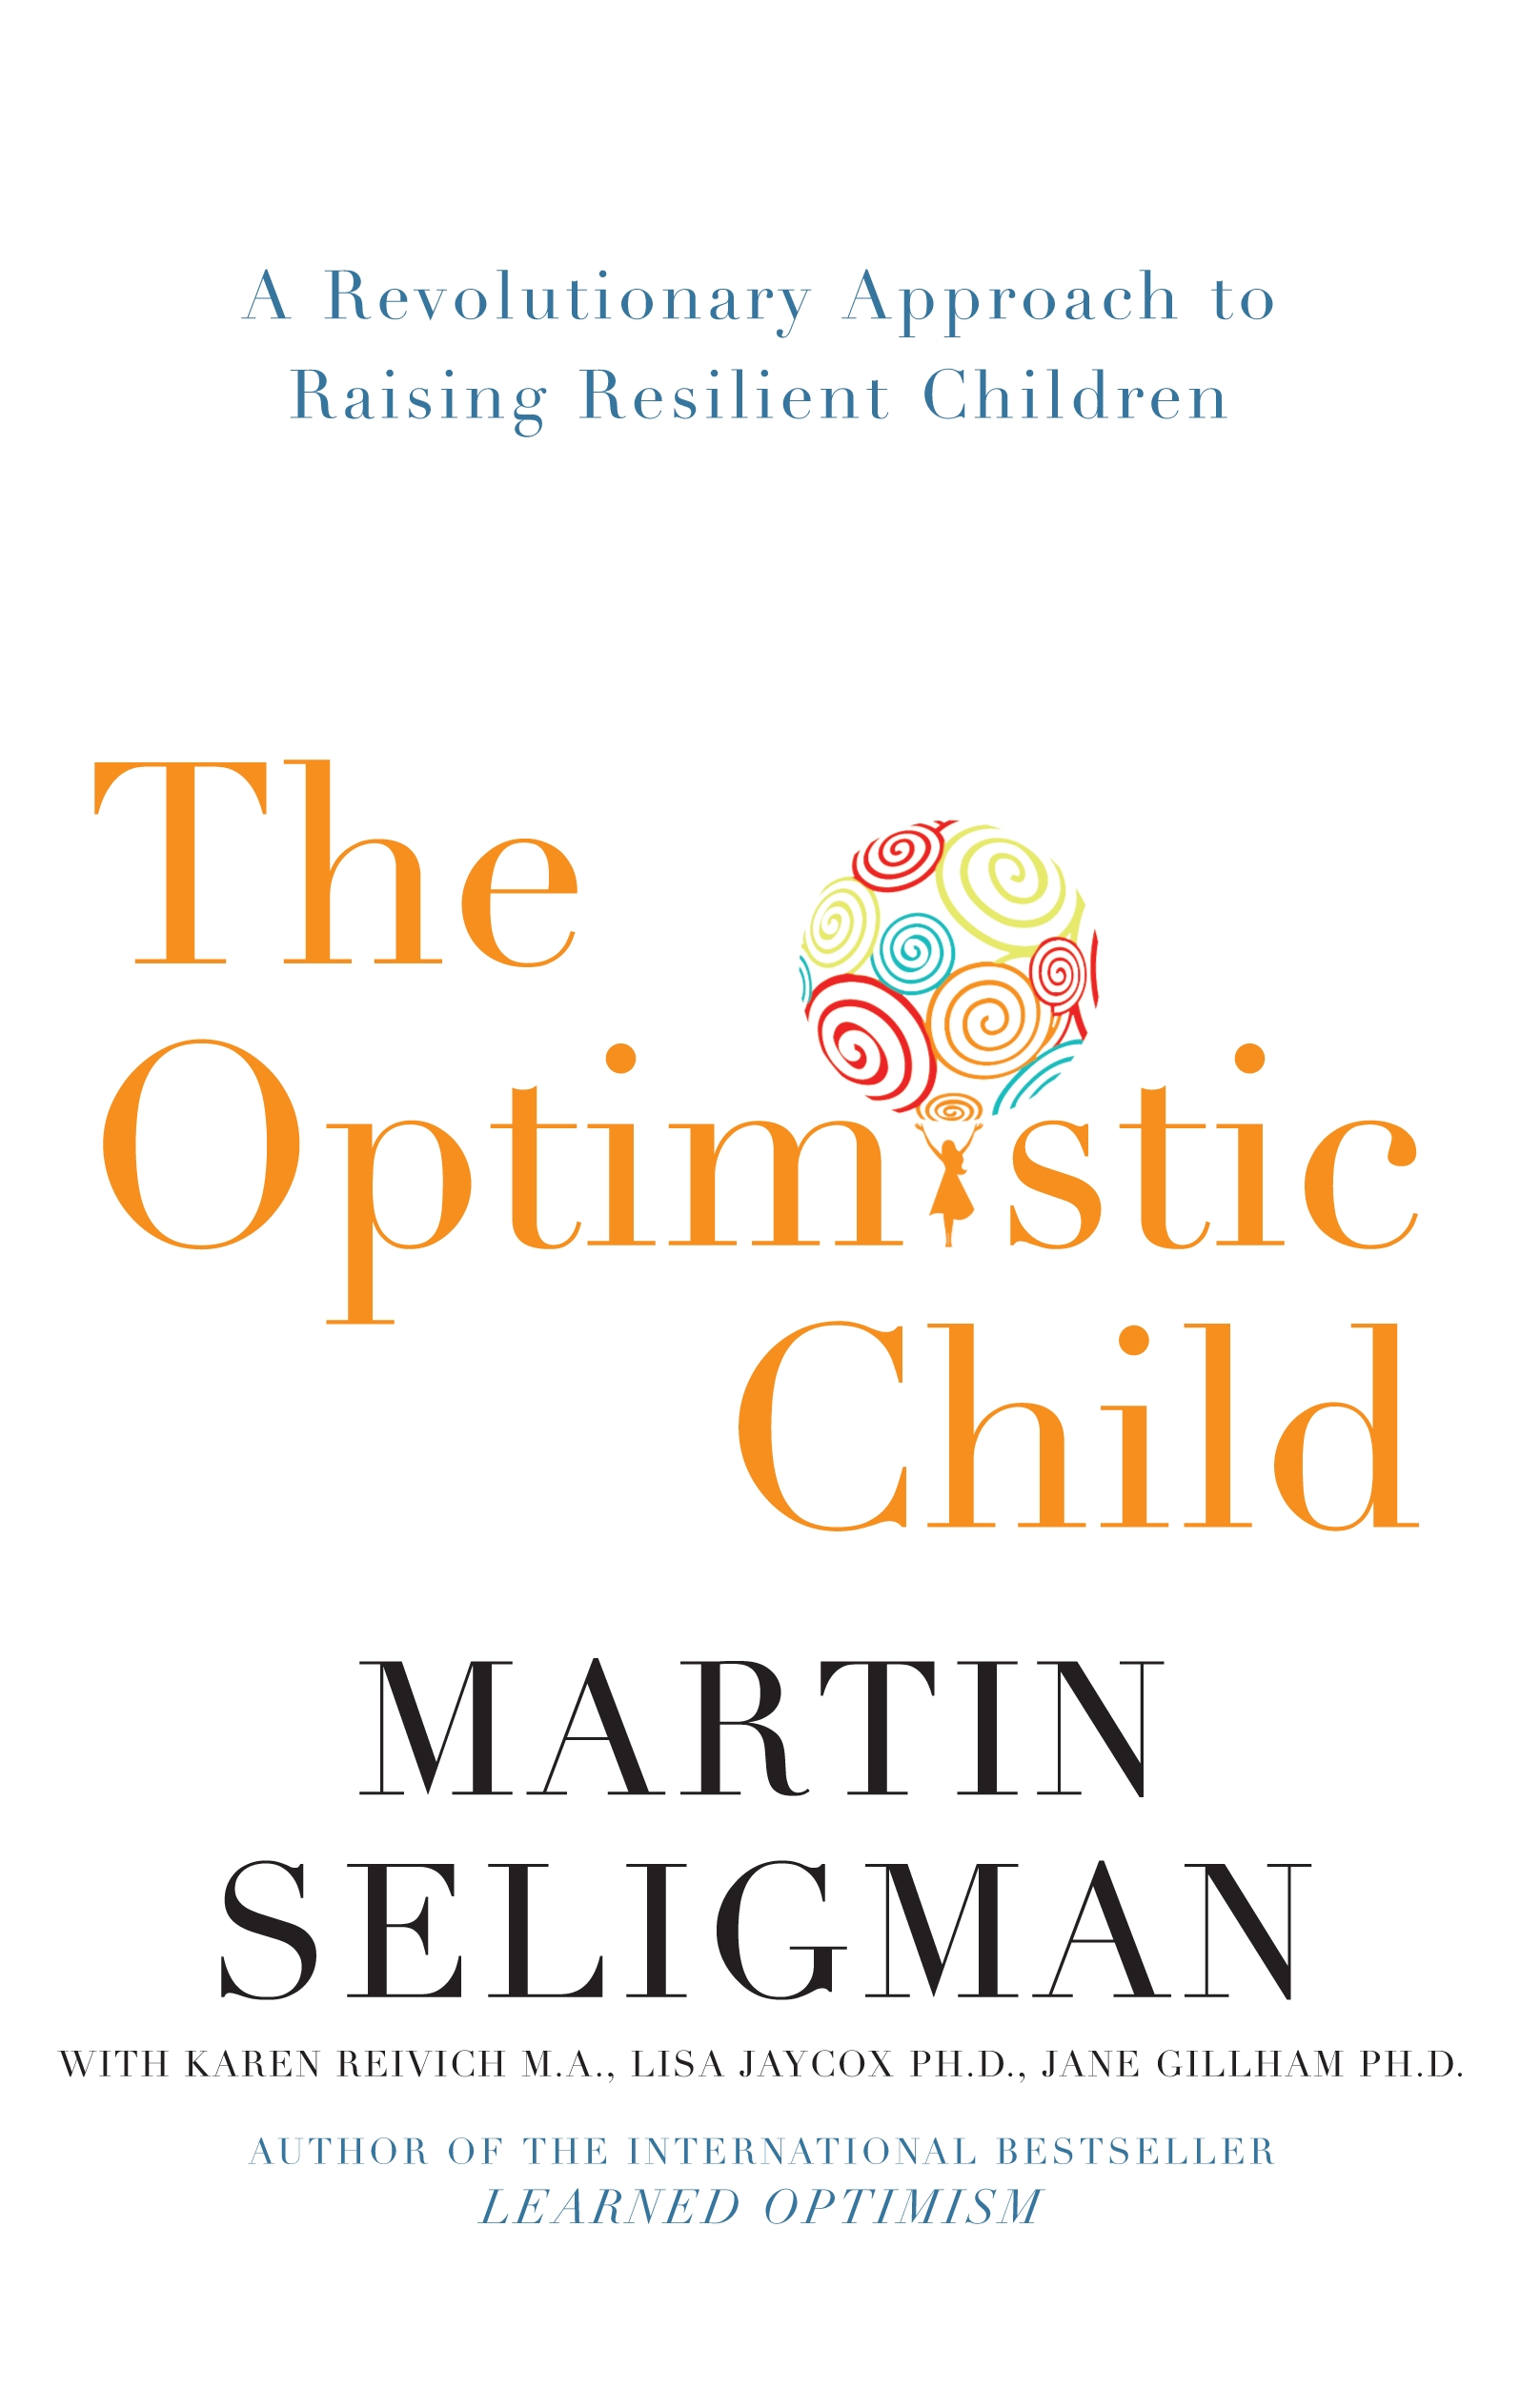 The Optimistic Child : A Revolutionary Approach to Raising Resilient Children